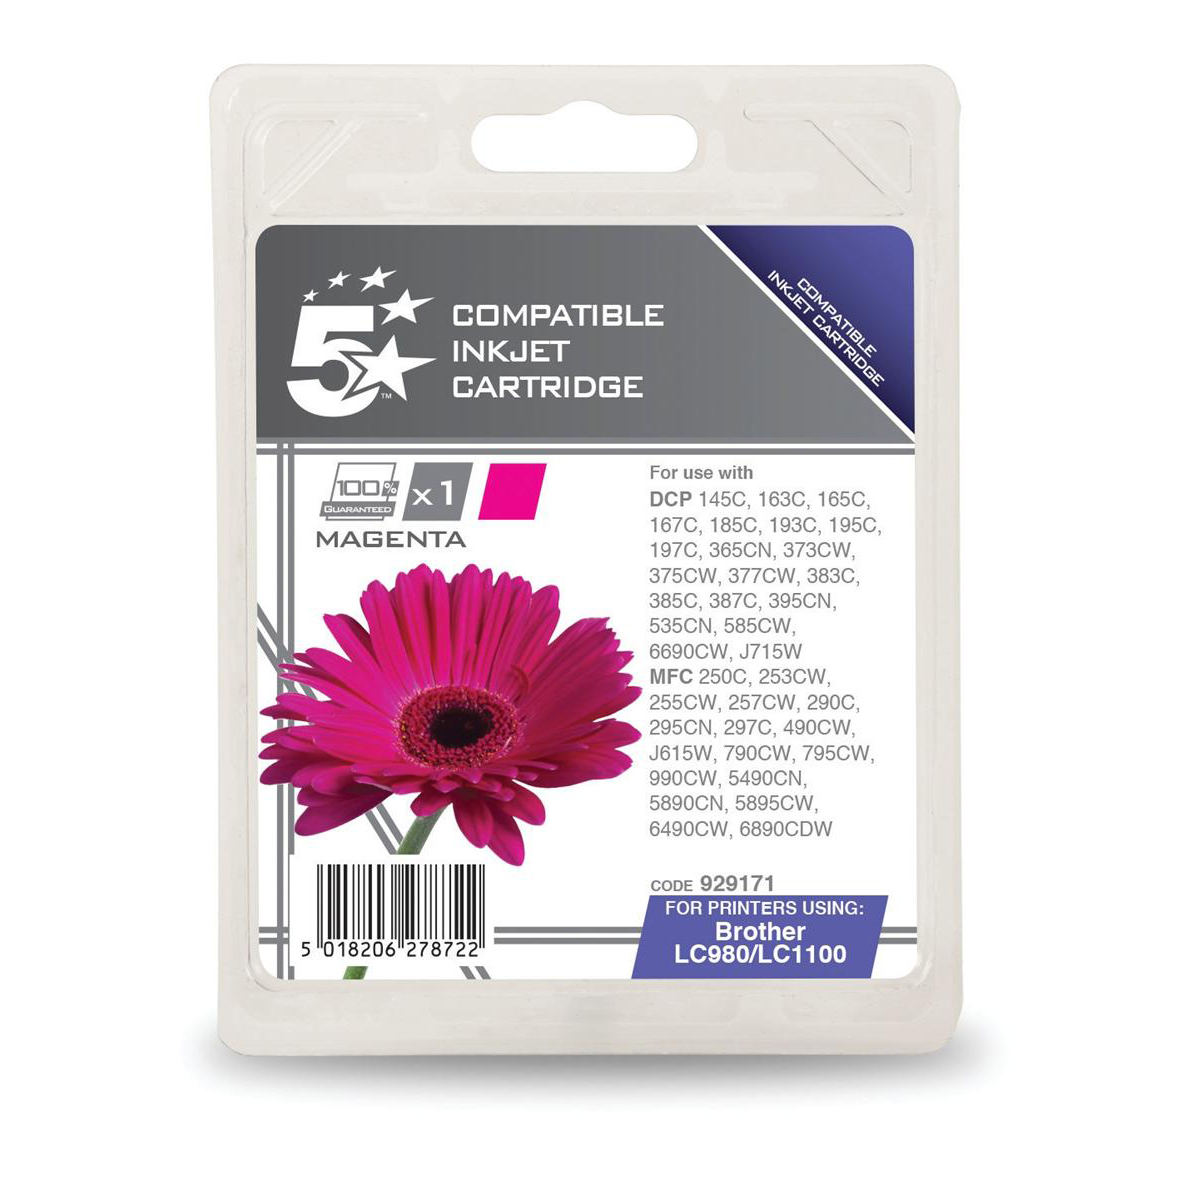 Inkjet Cartridges 5 Star Office Remanufactured Inkjet Cartridge Page Life 325pp Magenta Brother LC1100M Alternative